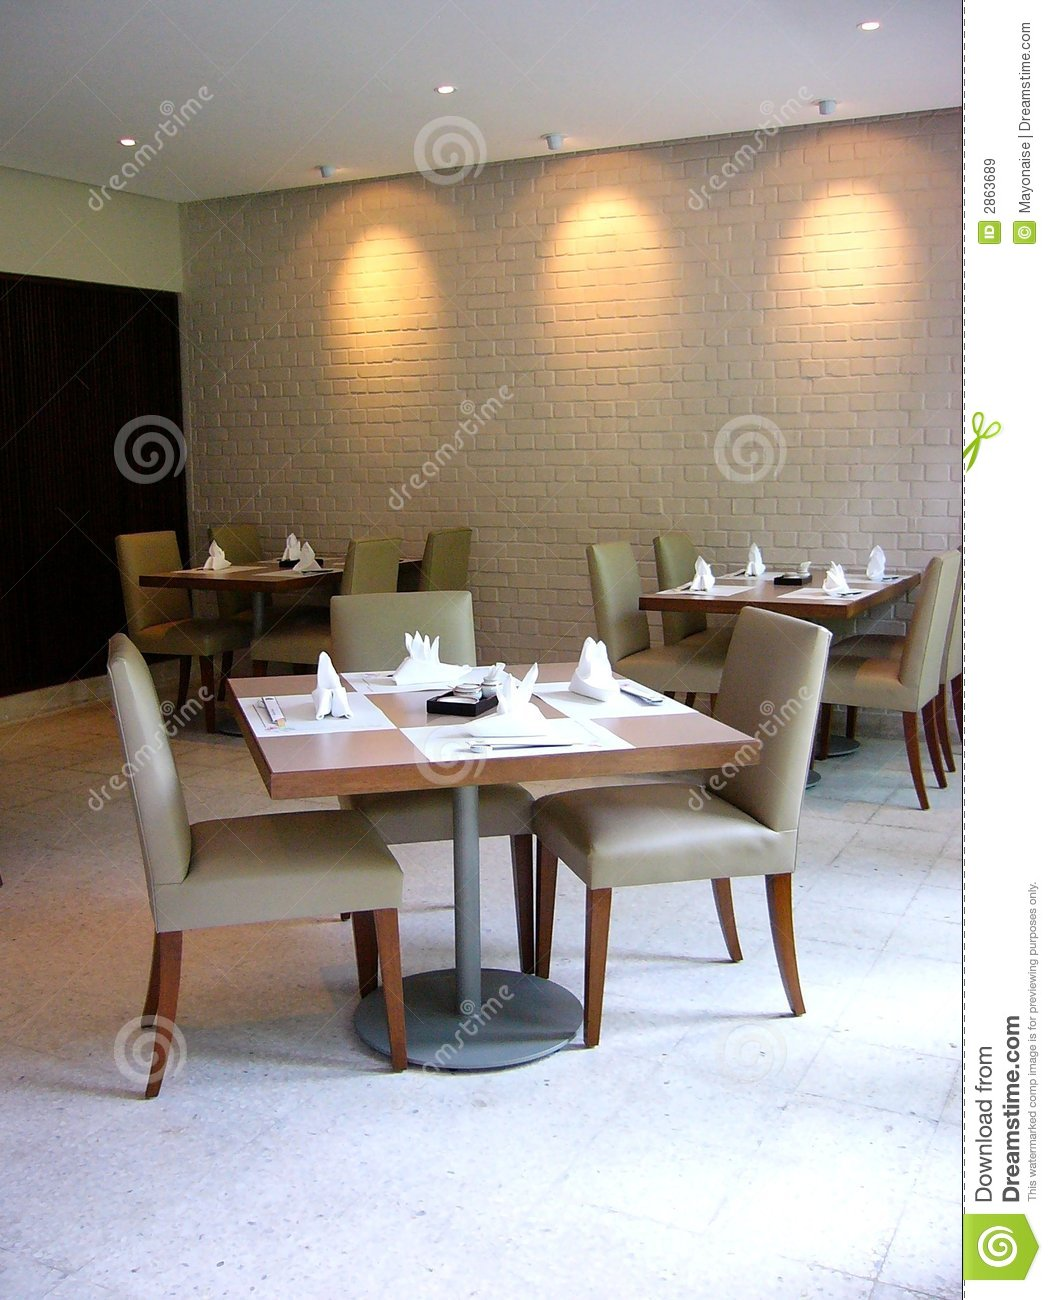 At a modern japanese restaurant royalty free stock images - Modern japanese cuisine ...